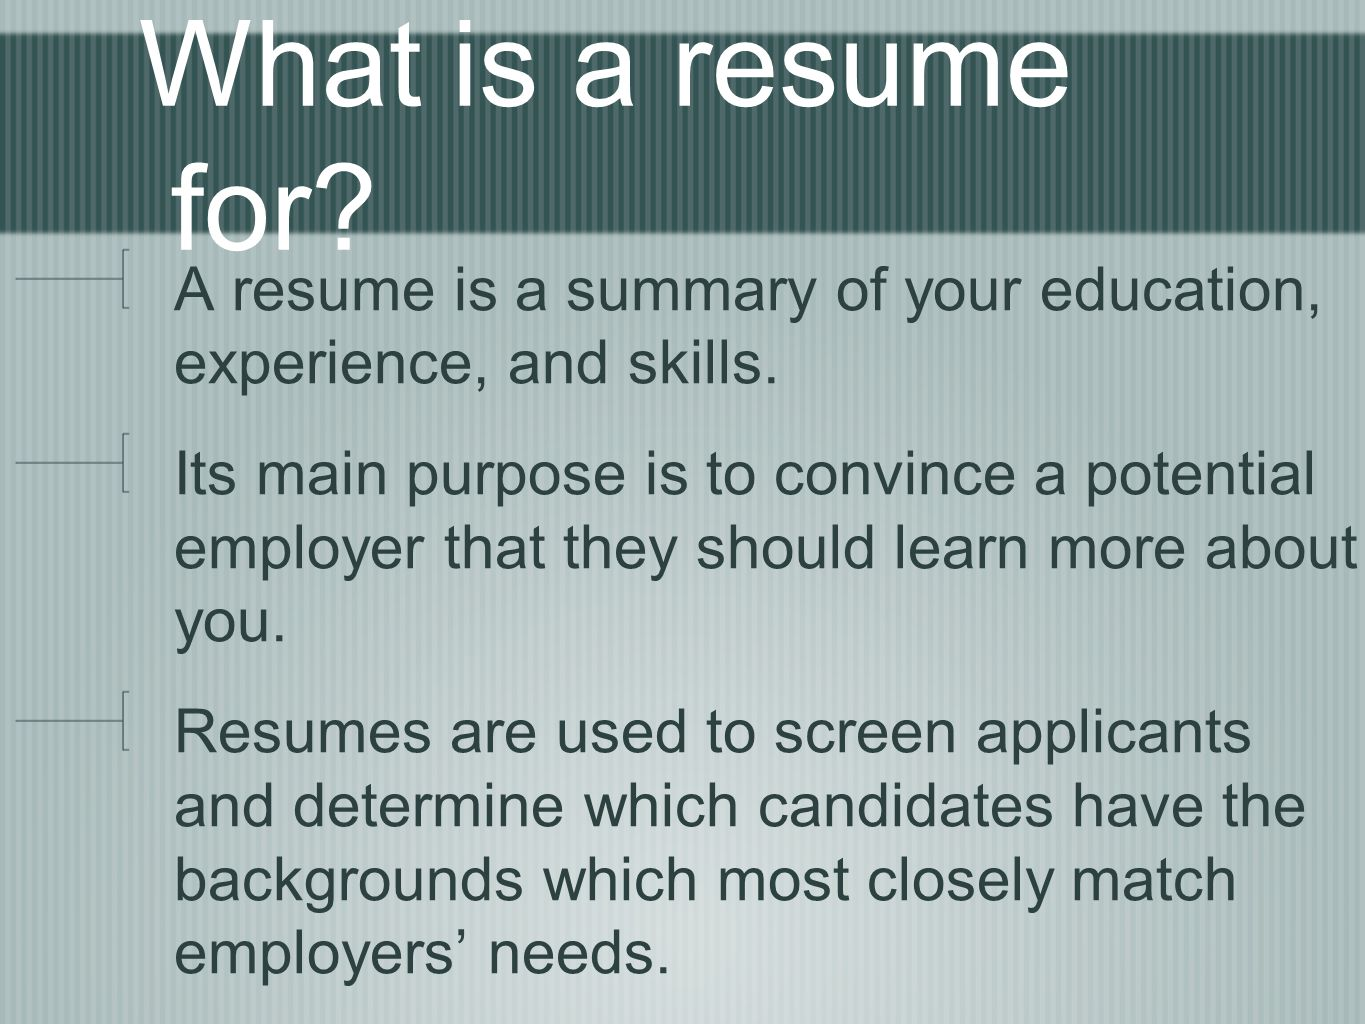 What is a resume for? A resume is a summary of your education, experience, and skills. Its main purpose is to convince a potential employer that they